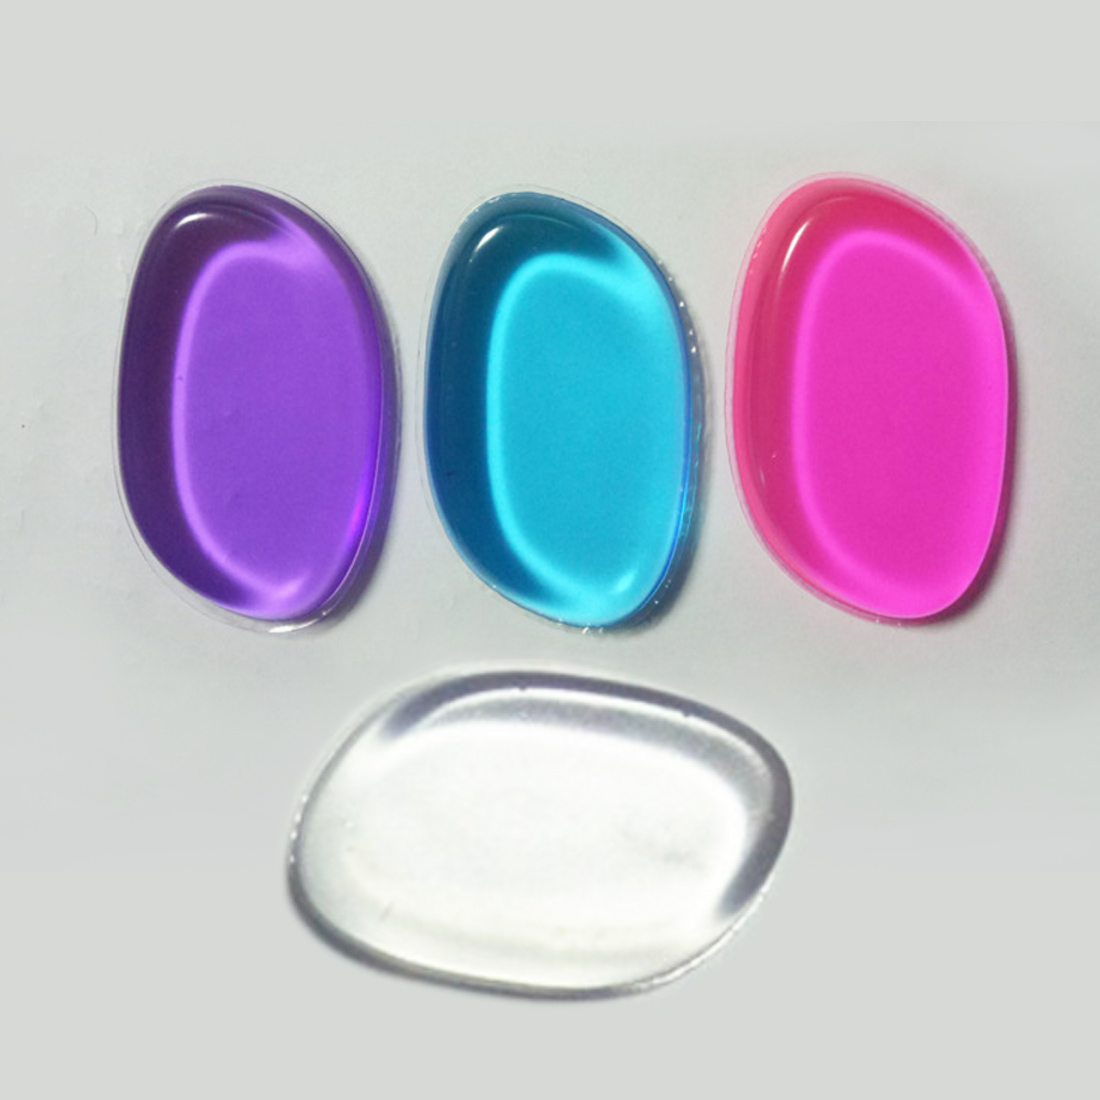 Cosmetic Puff Newest 1pc Ellipse Washable Soft Jelly Silicone Gel Makeup Foundation Puff For Make Up Powder Liquid Cream Cosmetic Tool